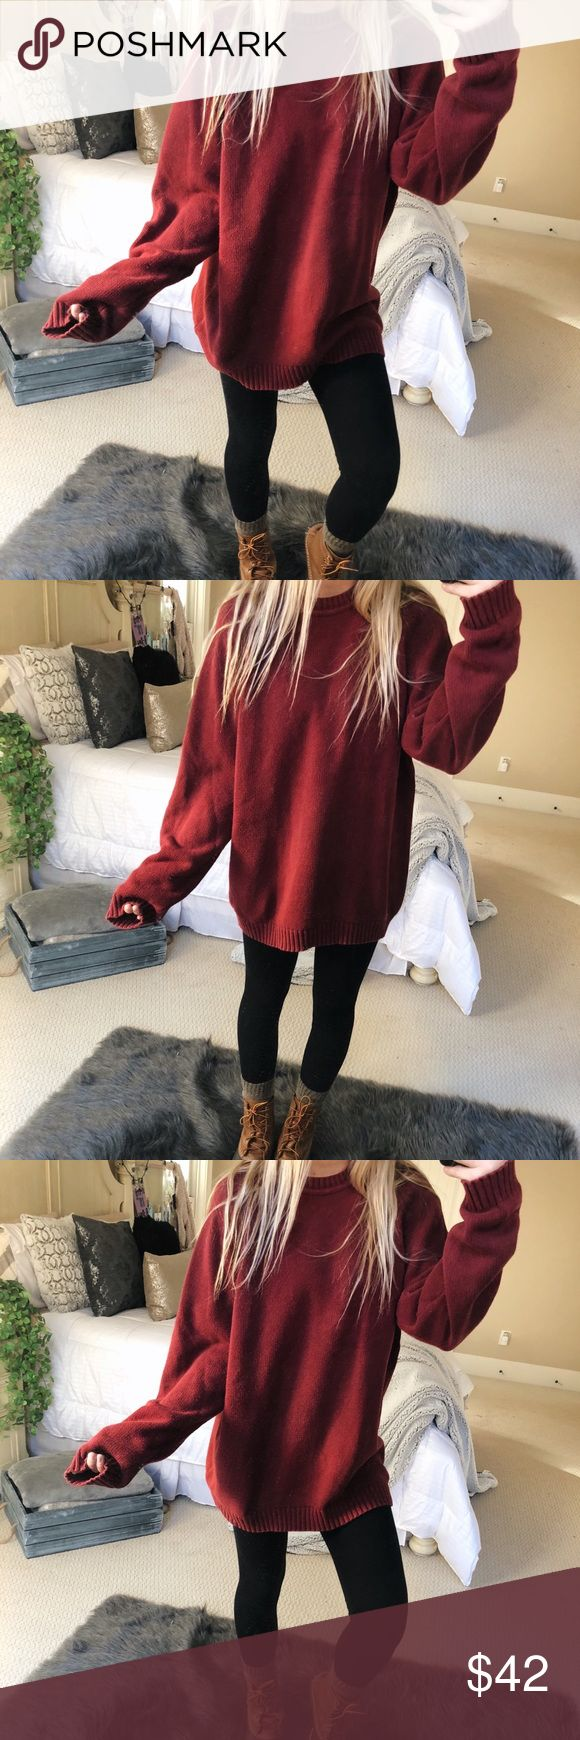 cozy burgundy knit sweater gorgeous cozy burgundy knitted sweater. super chunky and cute! fits a size medium or large 🍂🥀 — * all offers 100% welcomed + encouraged * bundle for a private discount of at least 20% off  * orders guaranteed to ship within 1-2 days unless stated otherwise * ask me any questions if you ever have any! xo Sweaters